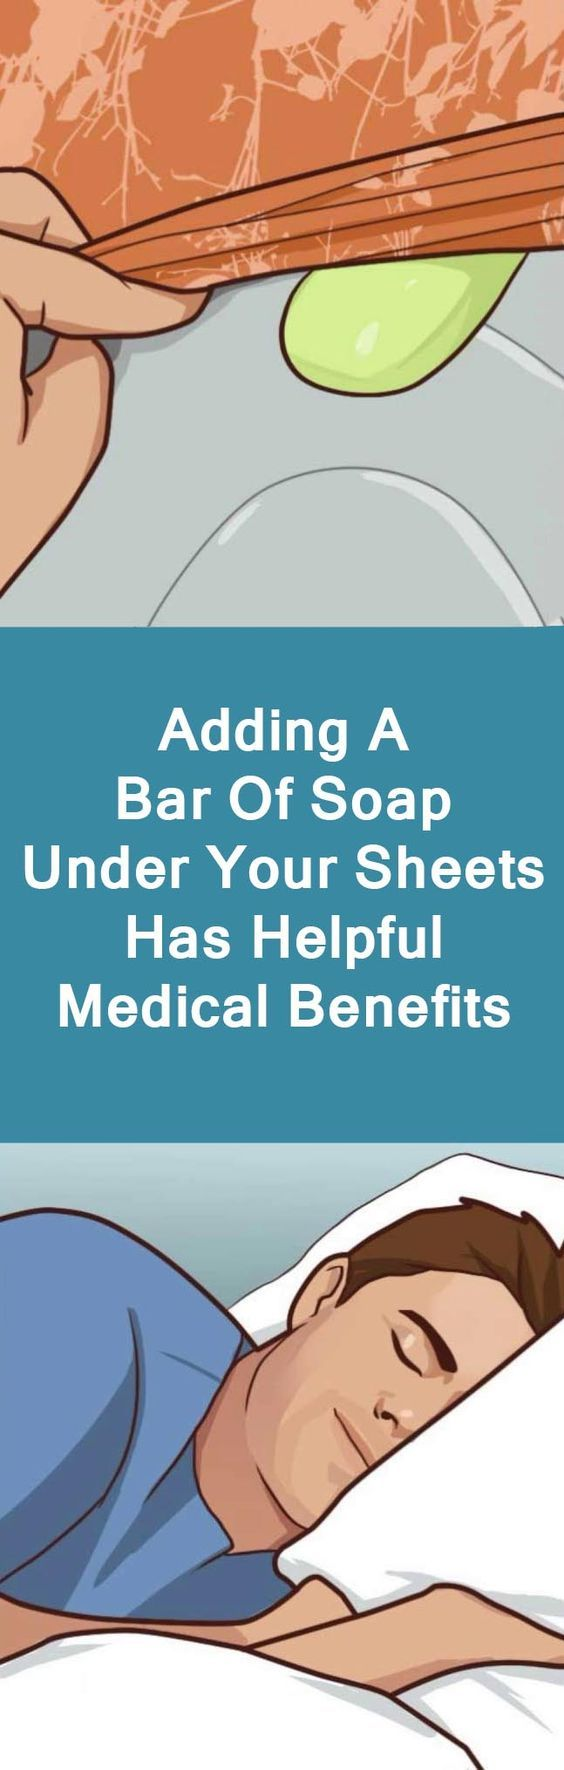 ADDING A BAR OF SOAP UNDER YOUR SHEETS HAS HELPFUL MEDICAL BENEFITS ADDING A BAR OF SOAP UNDER YOUR SHEETS HAS HELPFUL MEDICAL BENEFITS ADDING A BAR OF SOAP UNDER YOUR SHEETS HAS HELPFUL MEDICAL BENEFITS #ADDING A #BAR OF #SOAP UNDER YOUR SHEETS HAS #HELPFUL #MEDICAL #BENEFITS